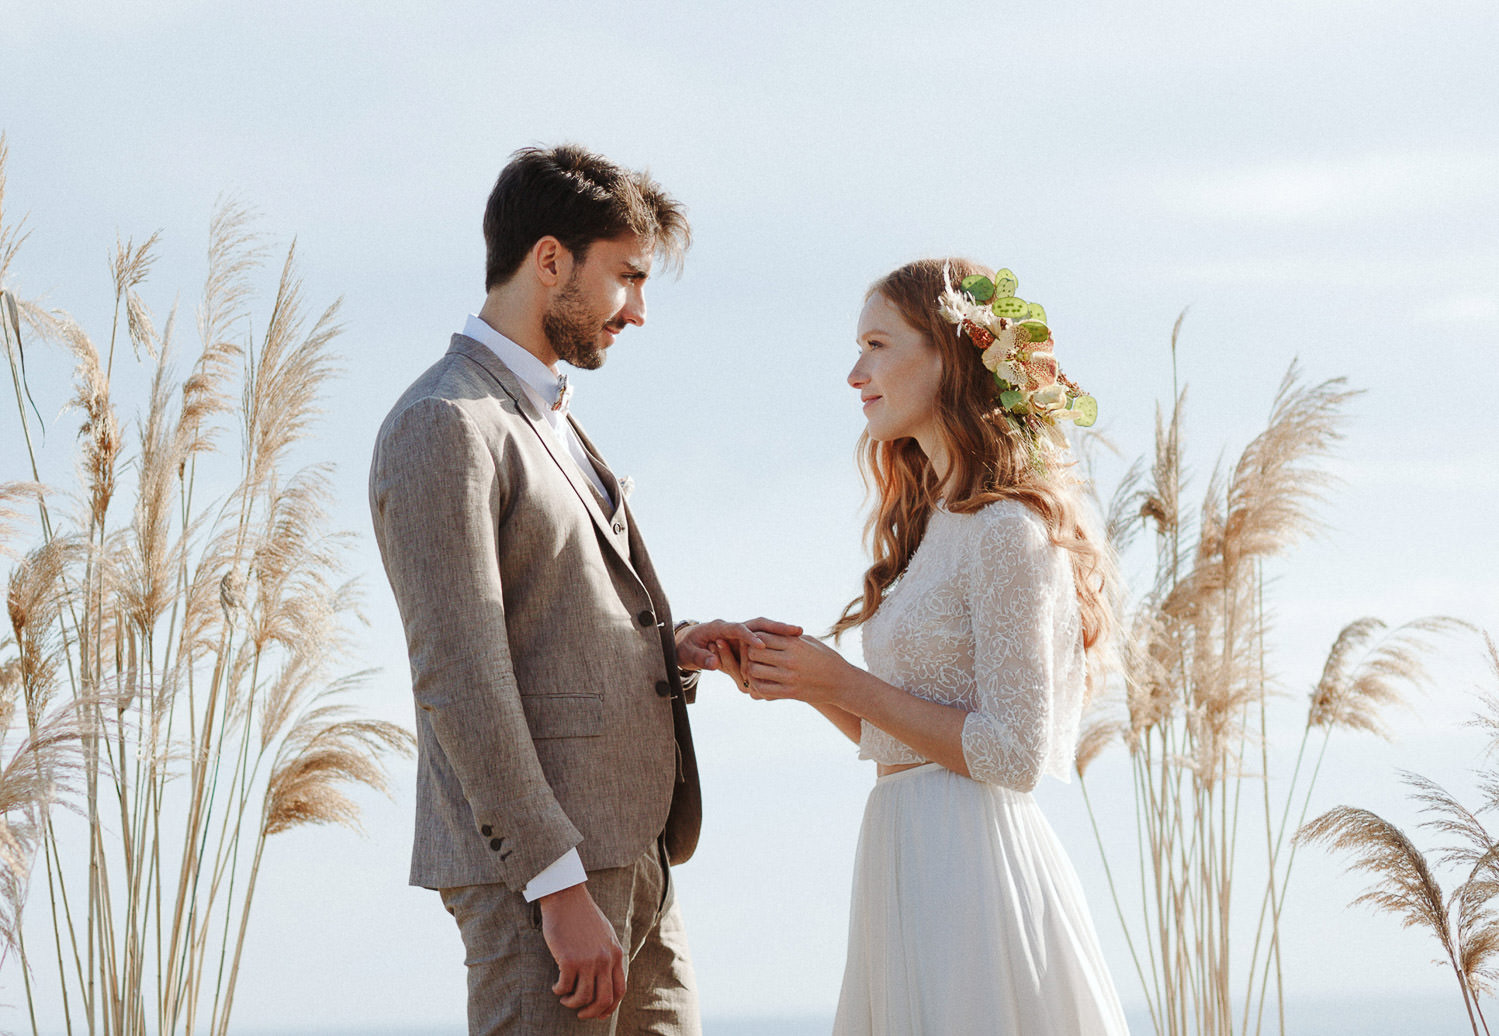 Romantic Apulia elopement with a gorgeous couple madly in love - Photo: Camilla Anchisi